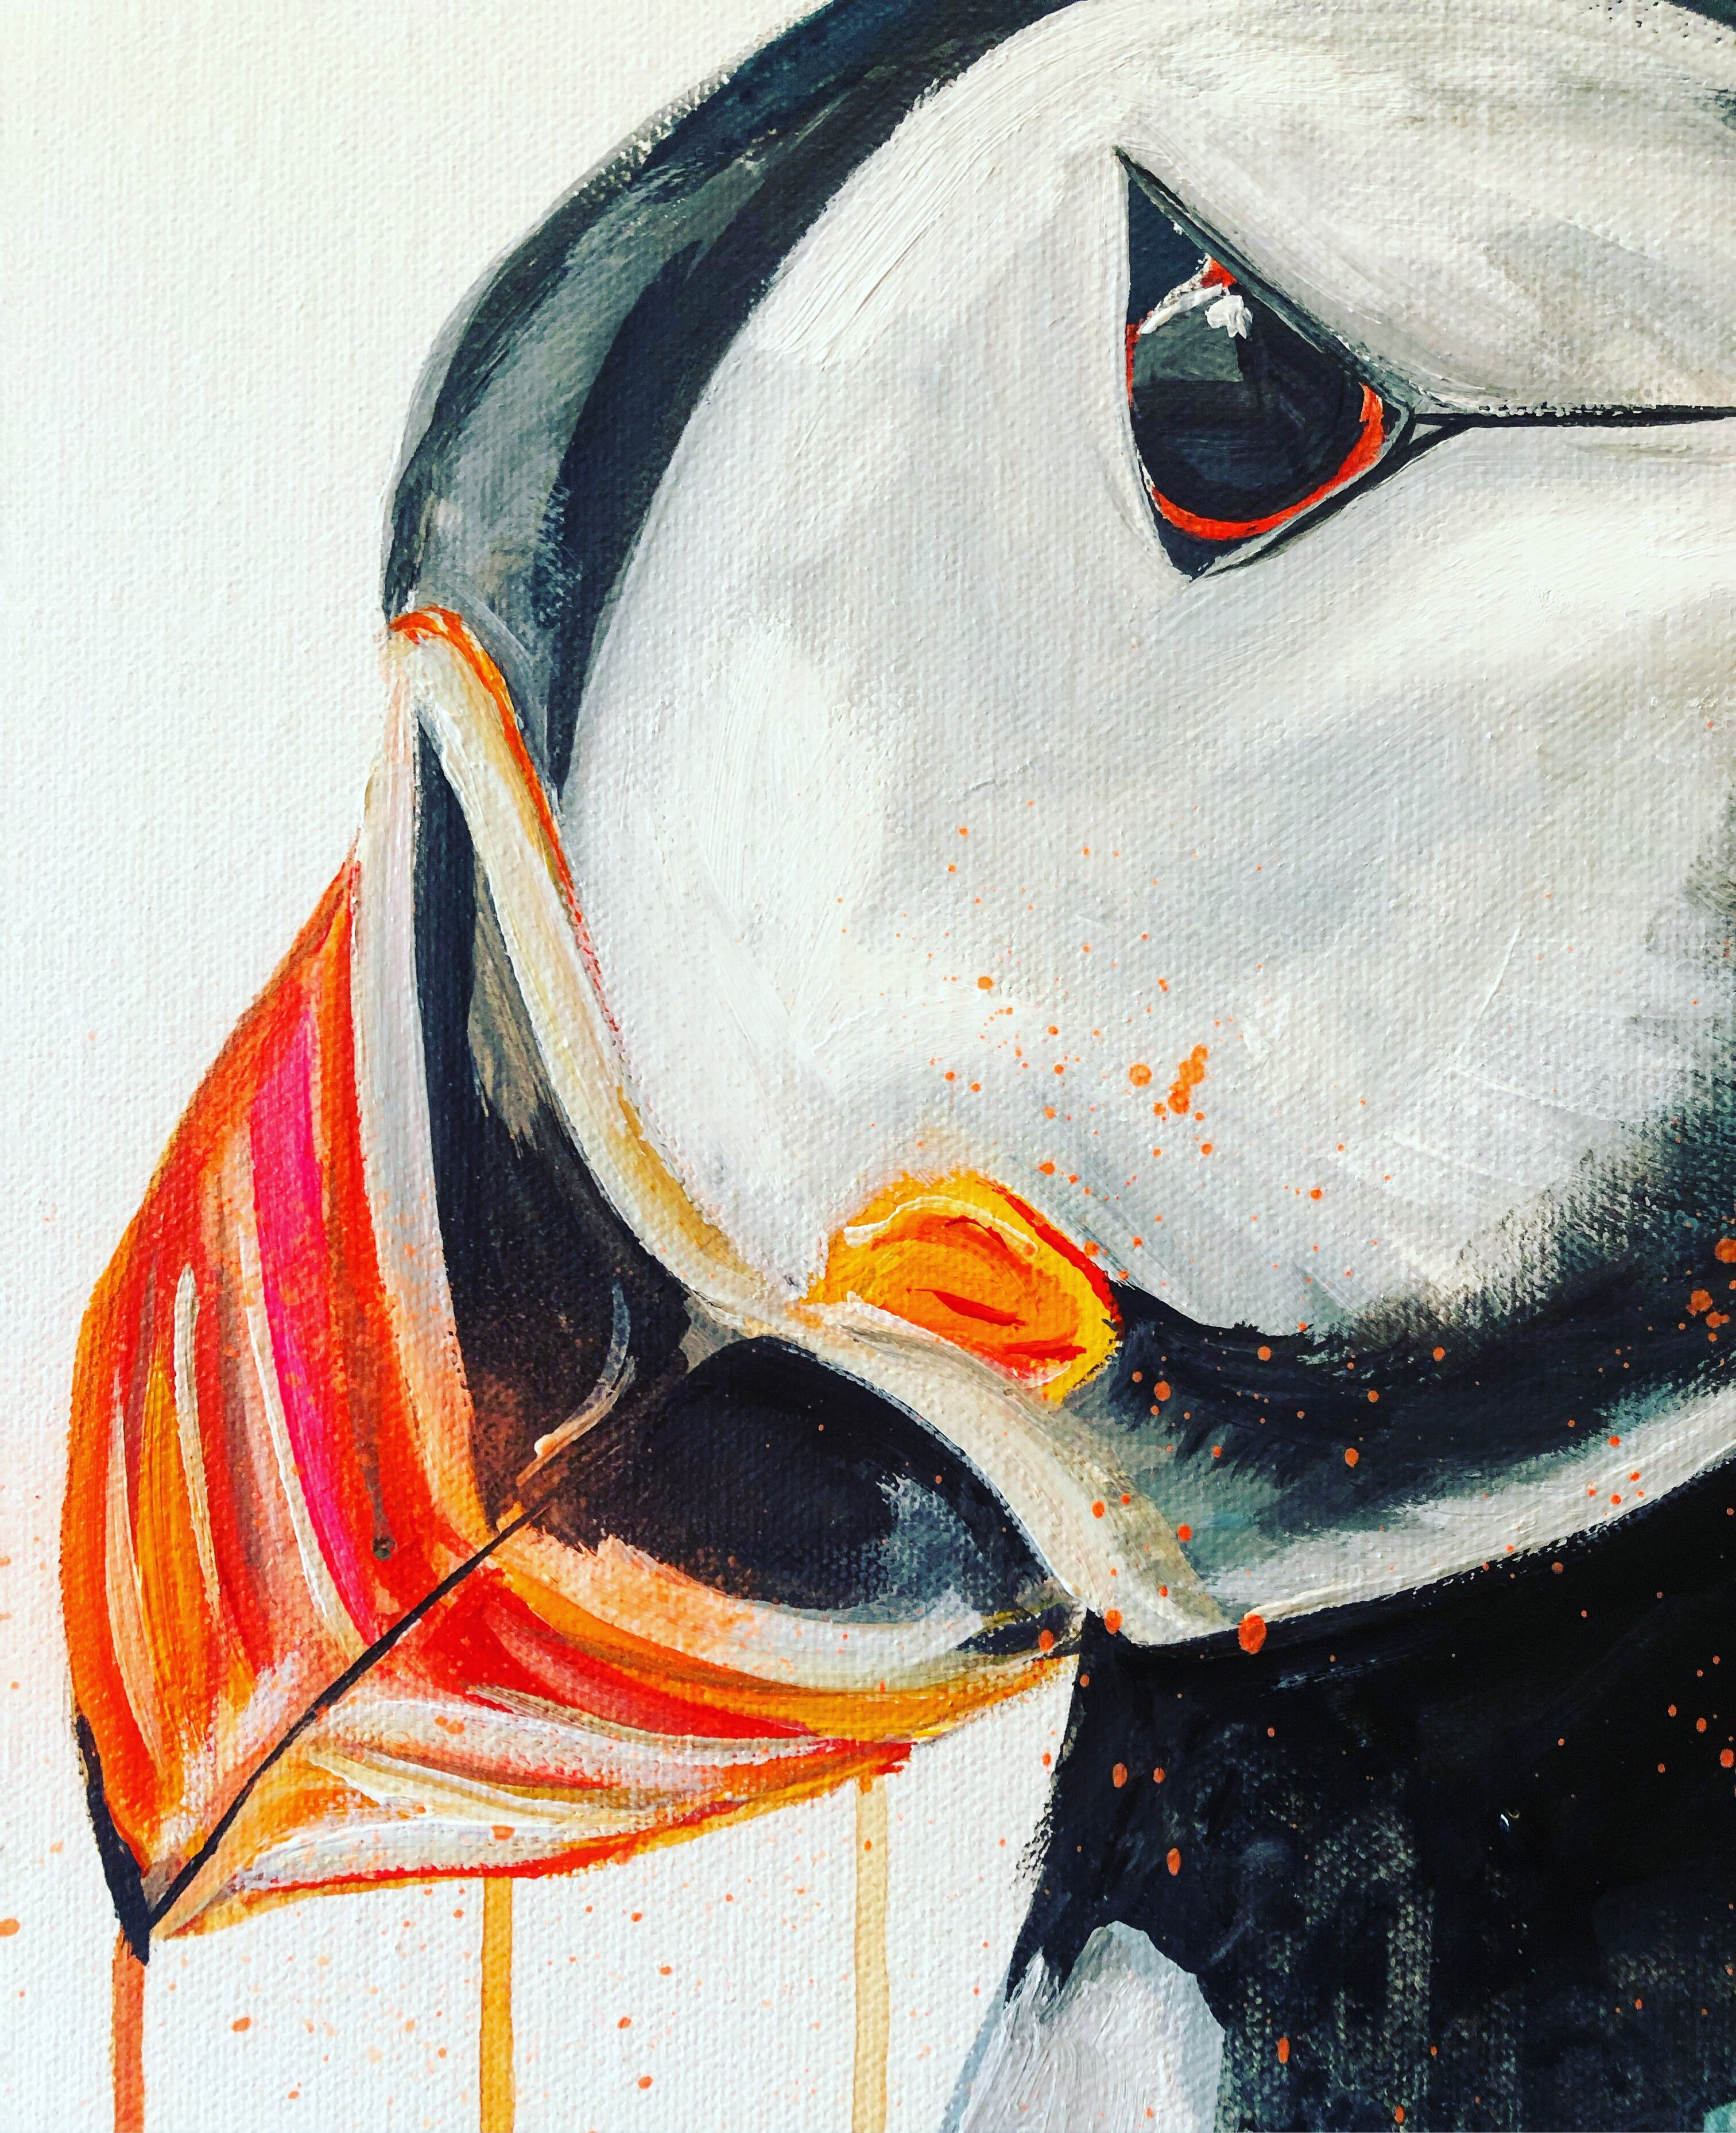 DAY45 #30minuteartchallenge PUFFIN